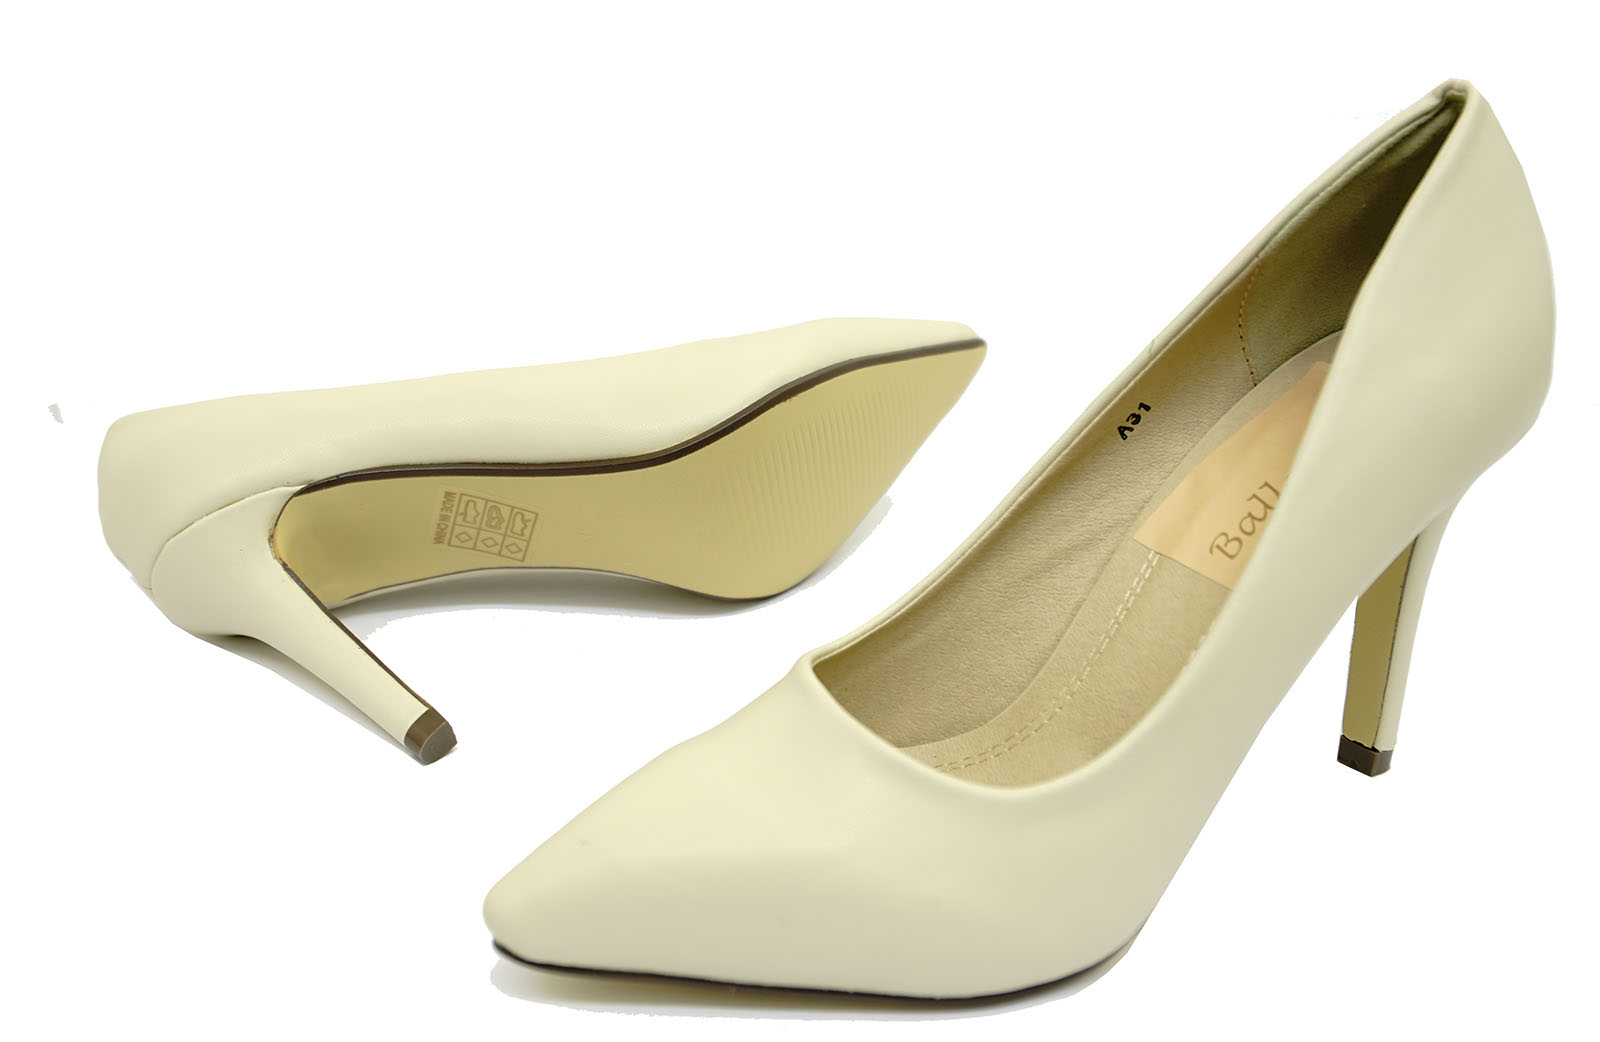 LADIES BEIGE STILETTO HIGH-HEEL SLIP-ON COURT WORK SMART POINTY SHOES SIZES 3-8